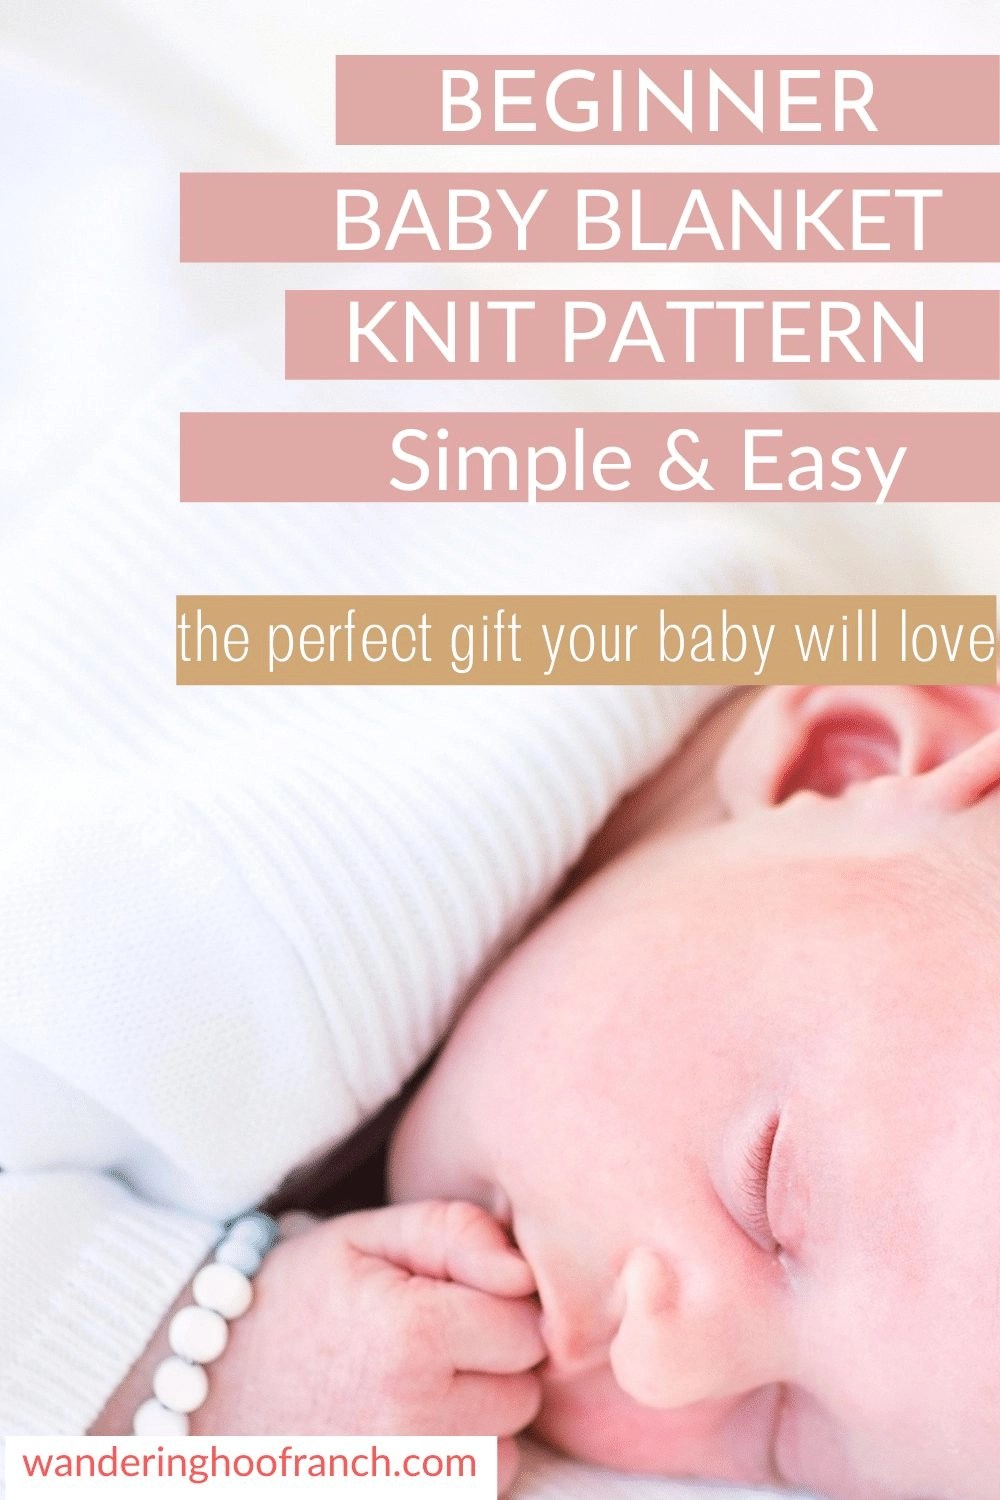 beginner baby blanket knit pattern pin text on white background with sleeping baby